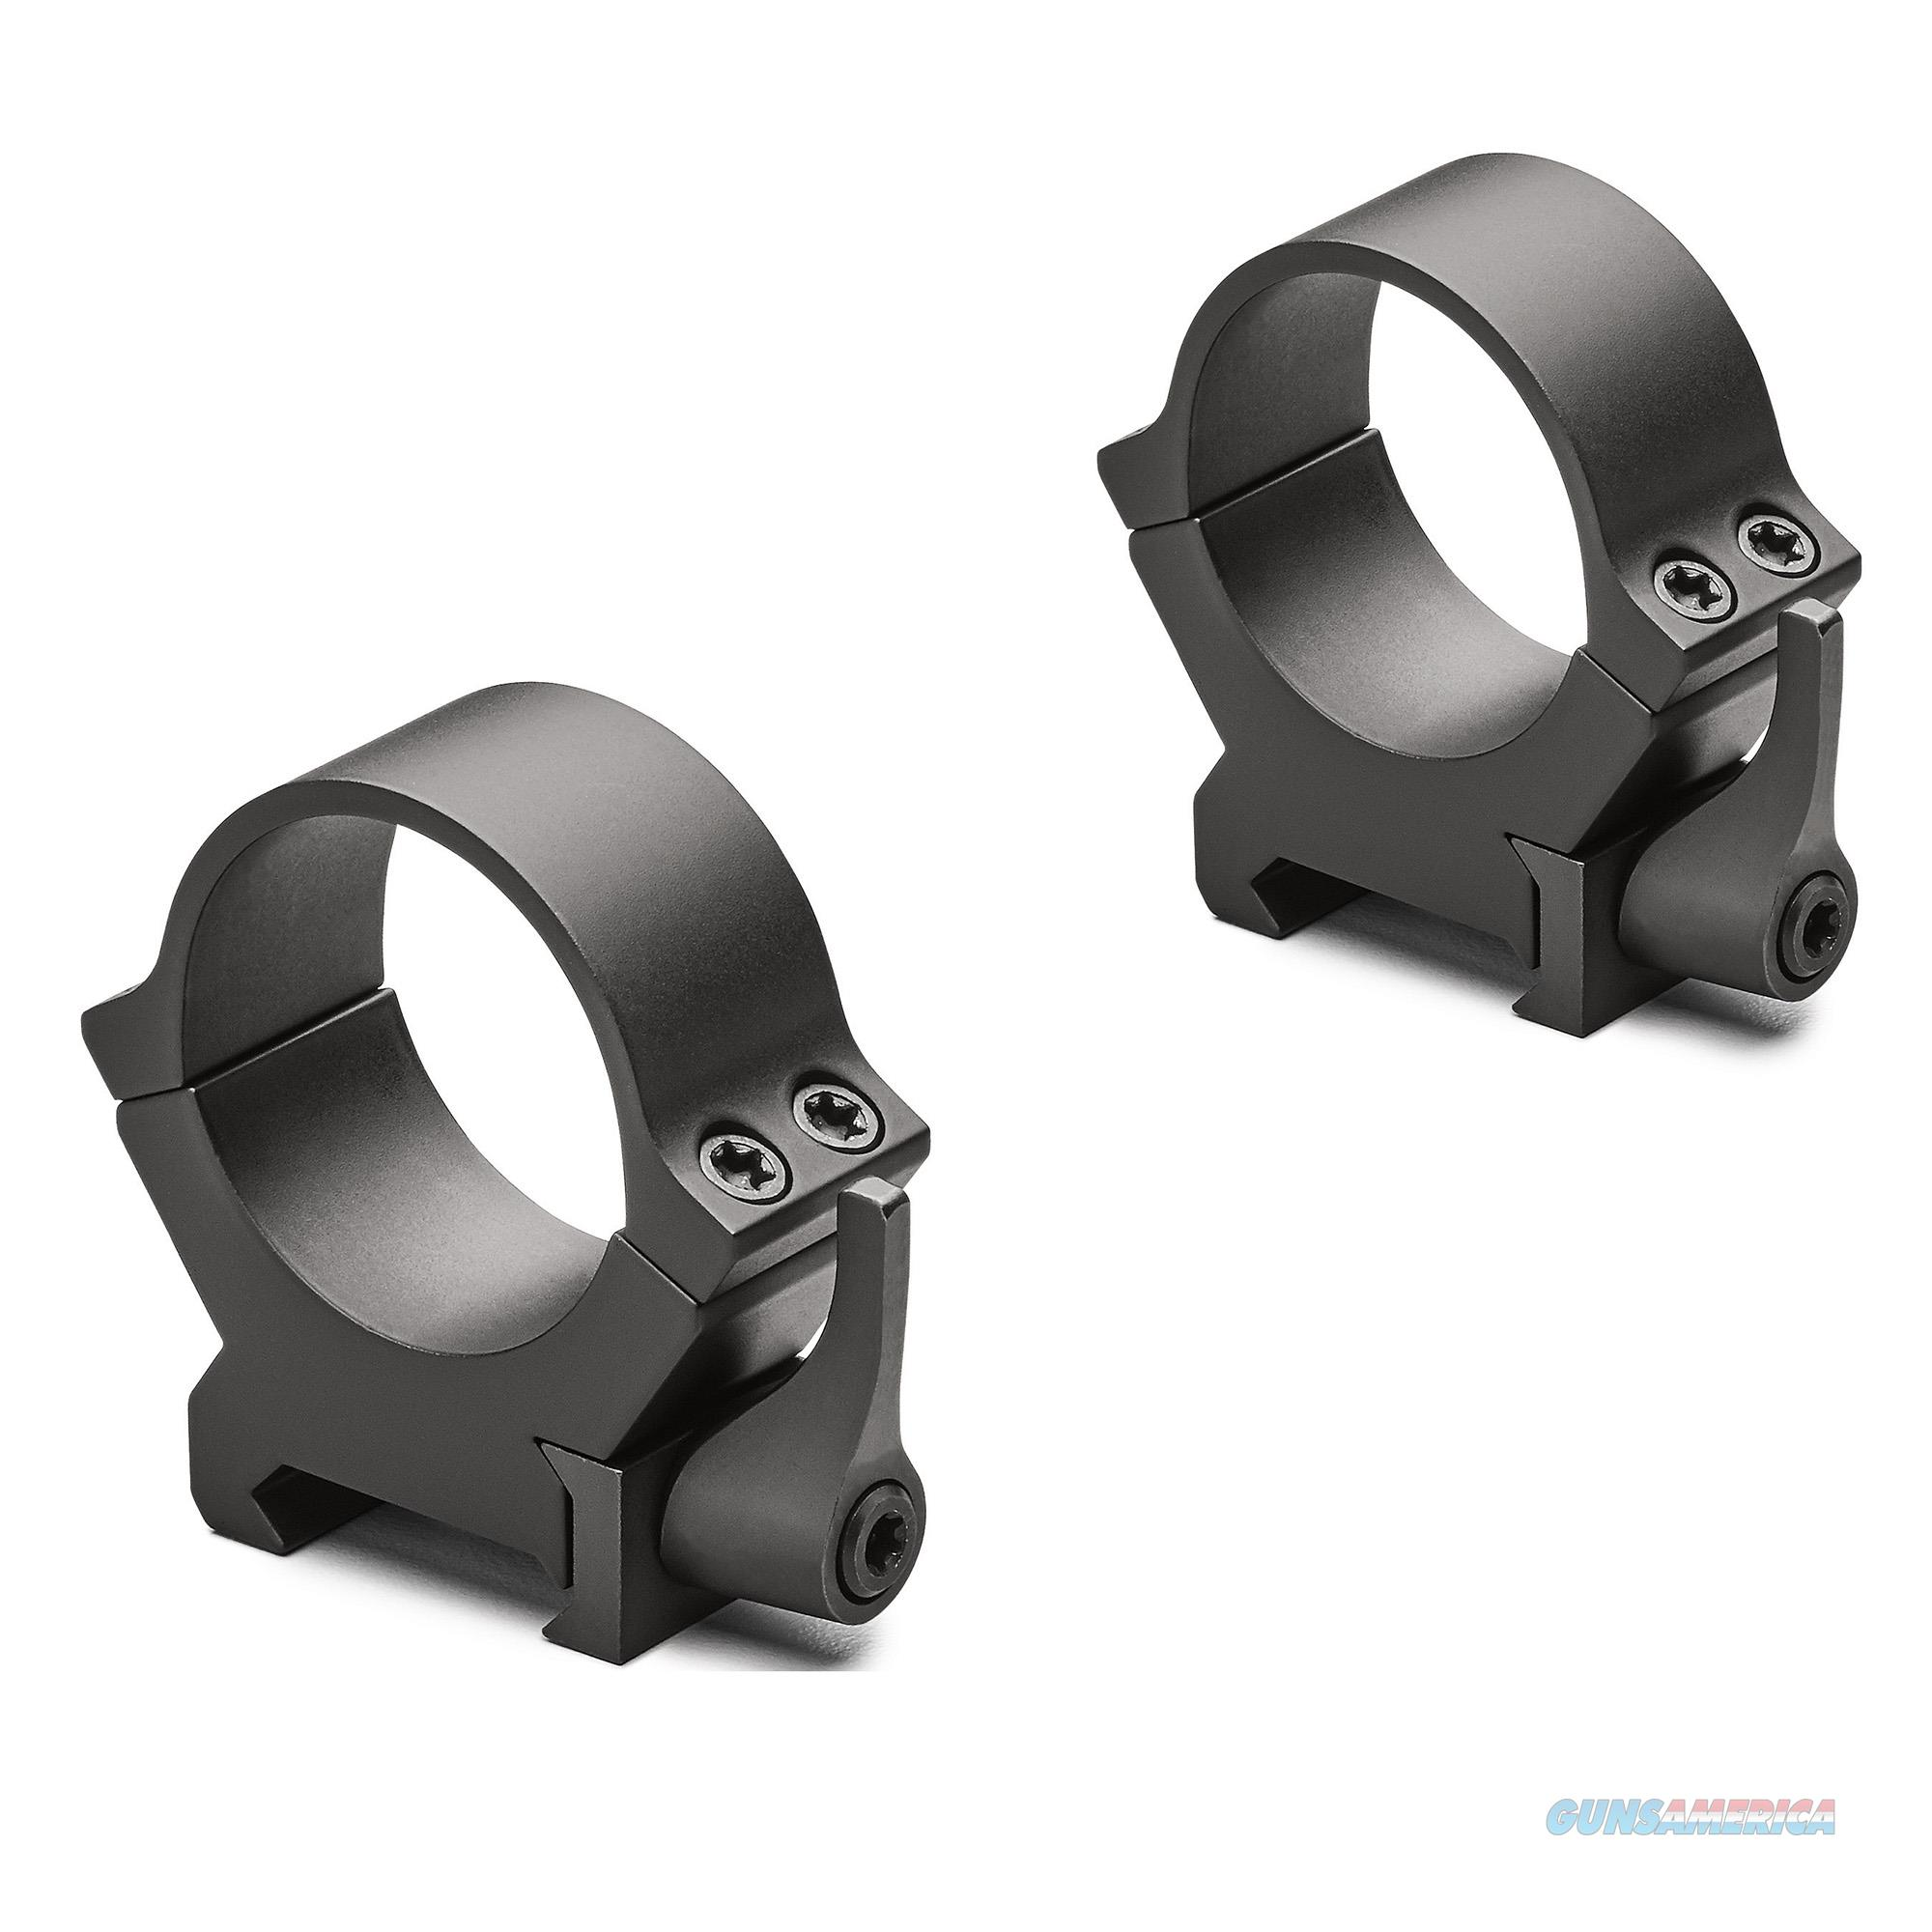 Leup Qrw2 30Mm Rings Med Matte 174076  Non-Guns > Scopes/Mounts/Rings & Optics > Mounts > Other